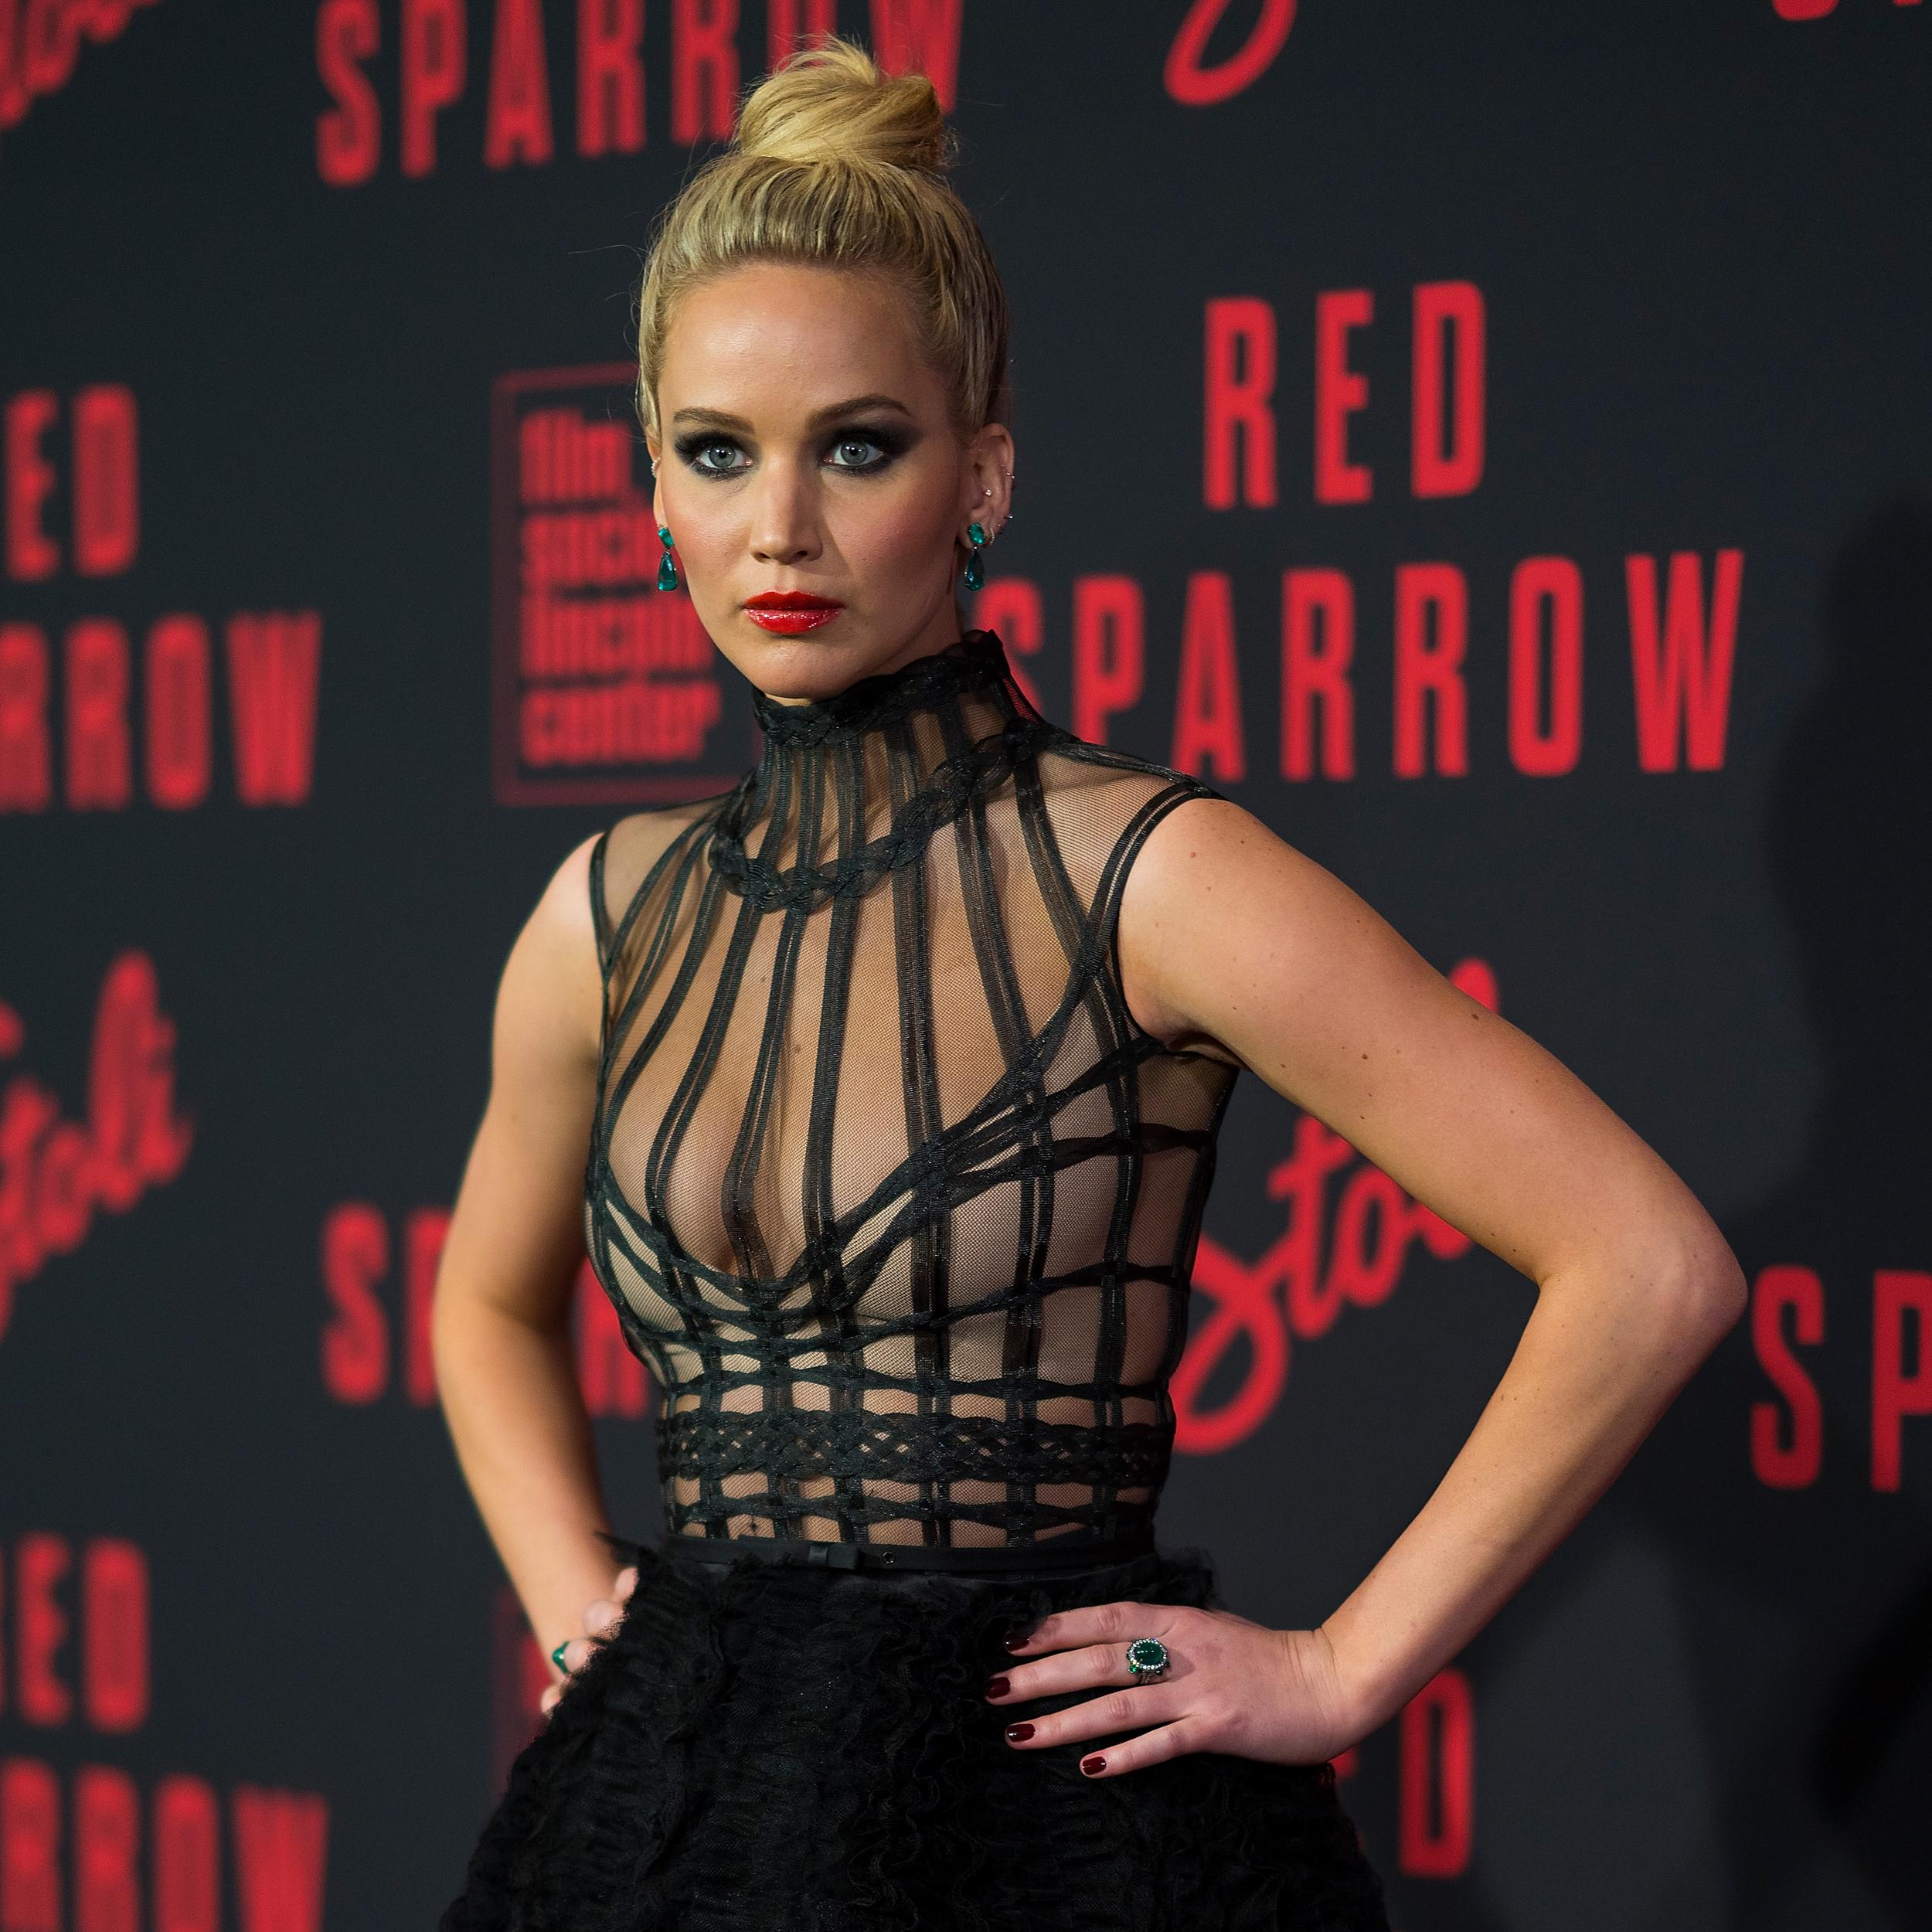 NEW YORK, NY - FEBRUARY 26:  Jennifer Lawrence attends the 'Red Sparrow' New York premiere at Alice Tully Hall at Lincoln Center on February 26, 2018 in New York City.  (Photo by Michael Stewart/FilmMagic)